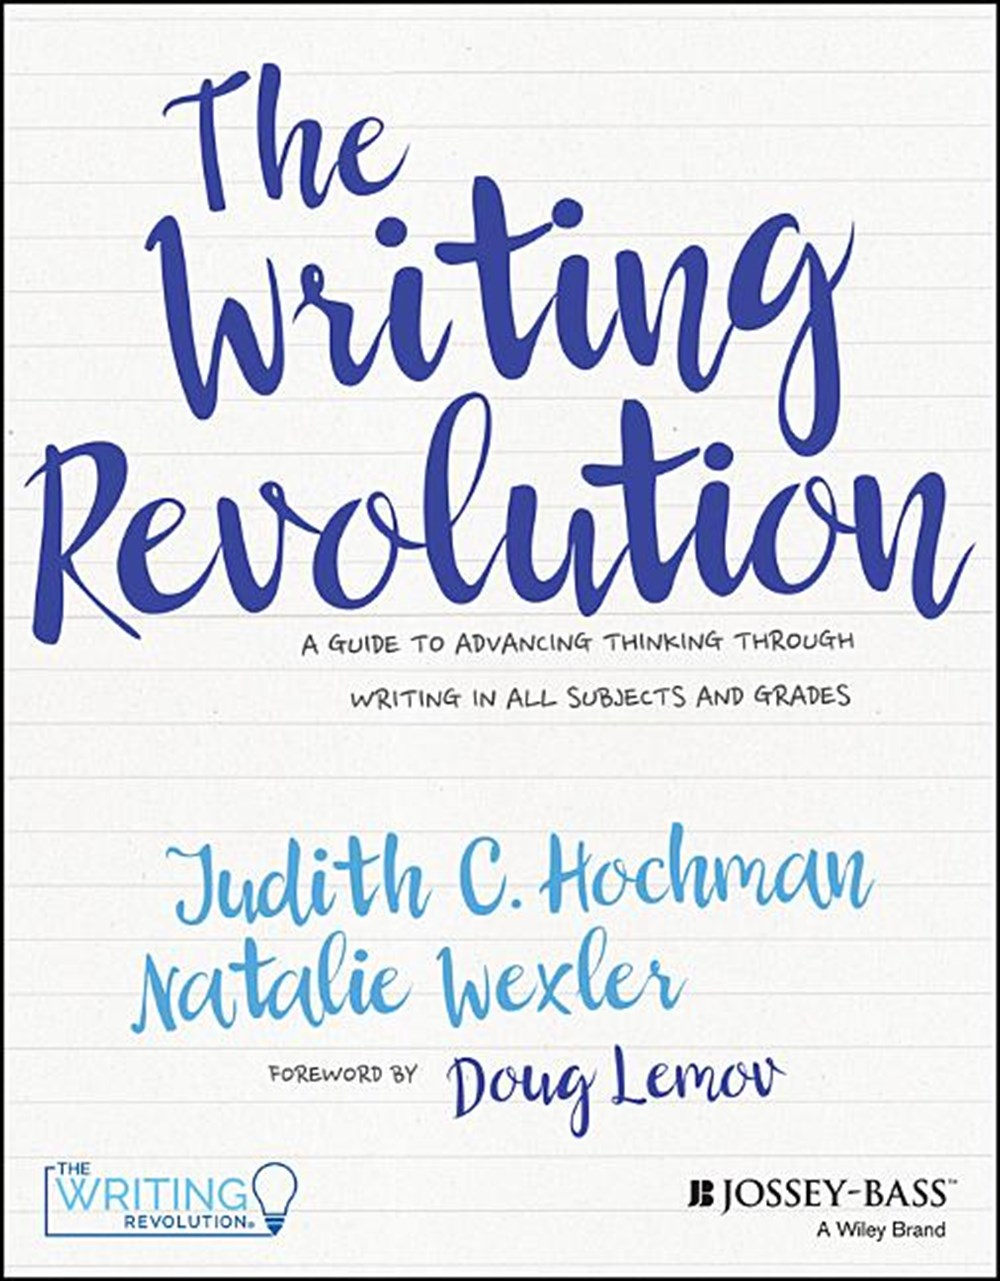 Writing Revolution A Guide to Advancing Thinking Through Writing in All Subjects and Grades